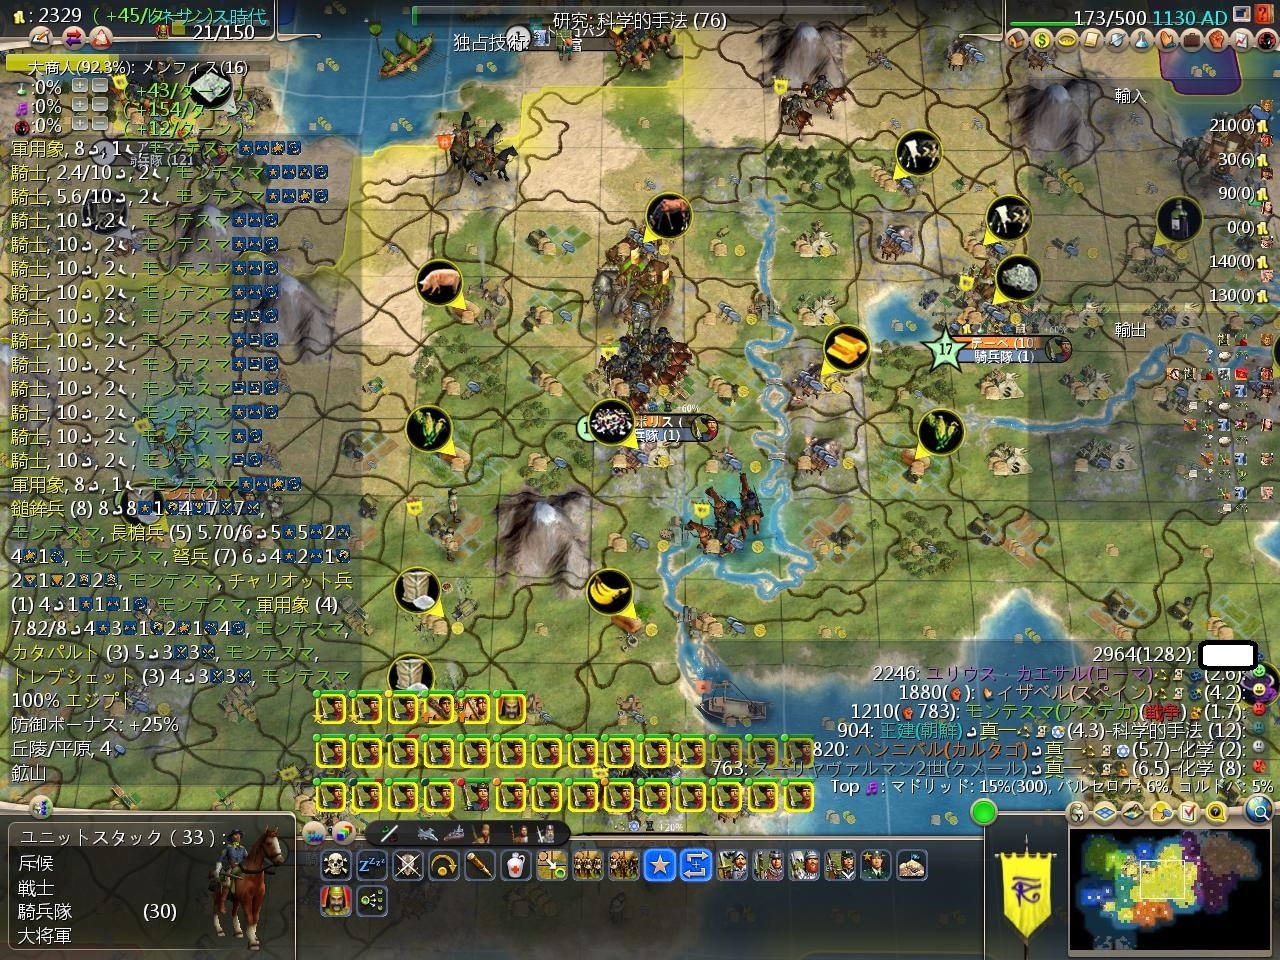 Civ4ScreenShot2216.JPG